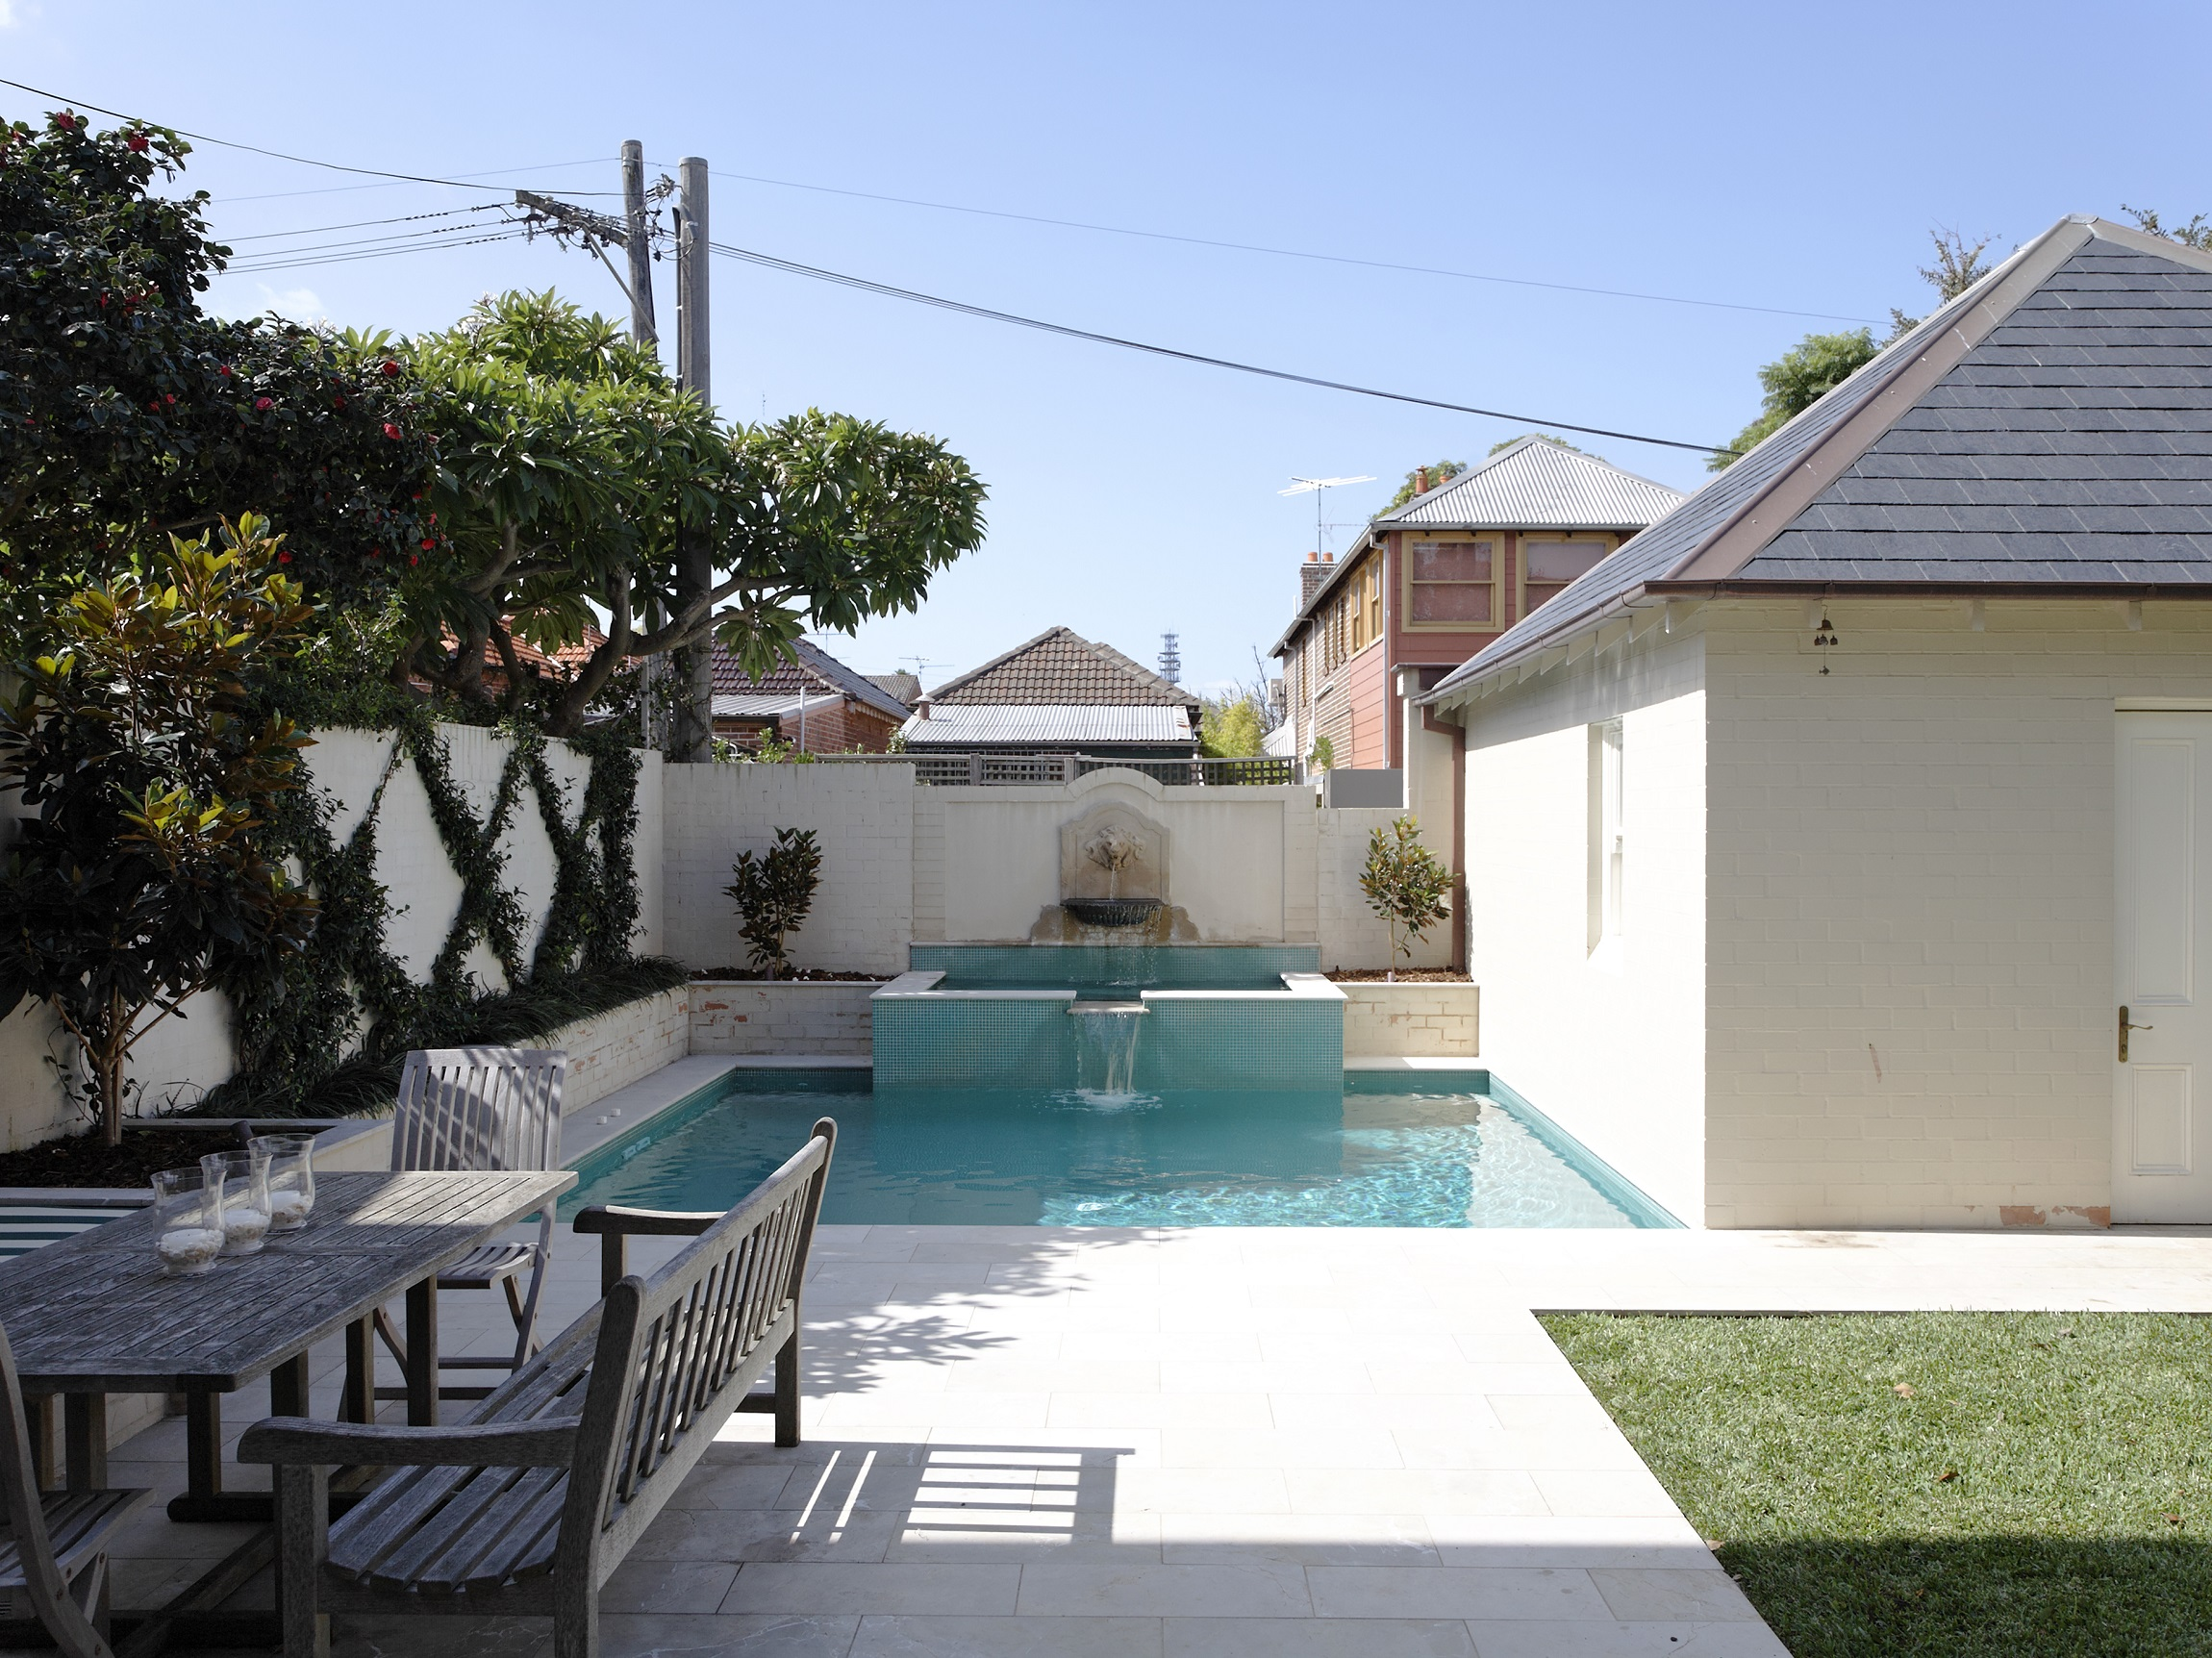 Sydney-Architecture-Swimming-Pool-Heritage-Michael-Bell-Architects(1)